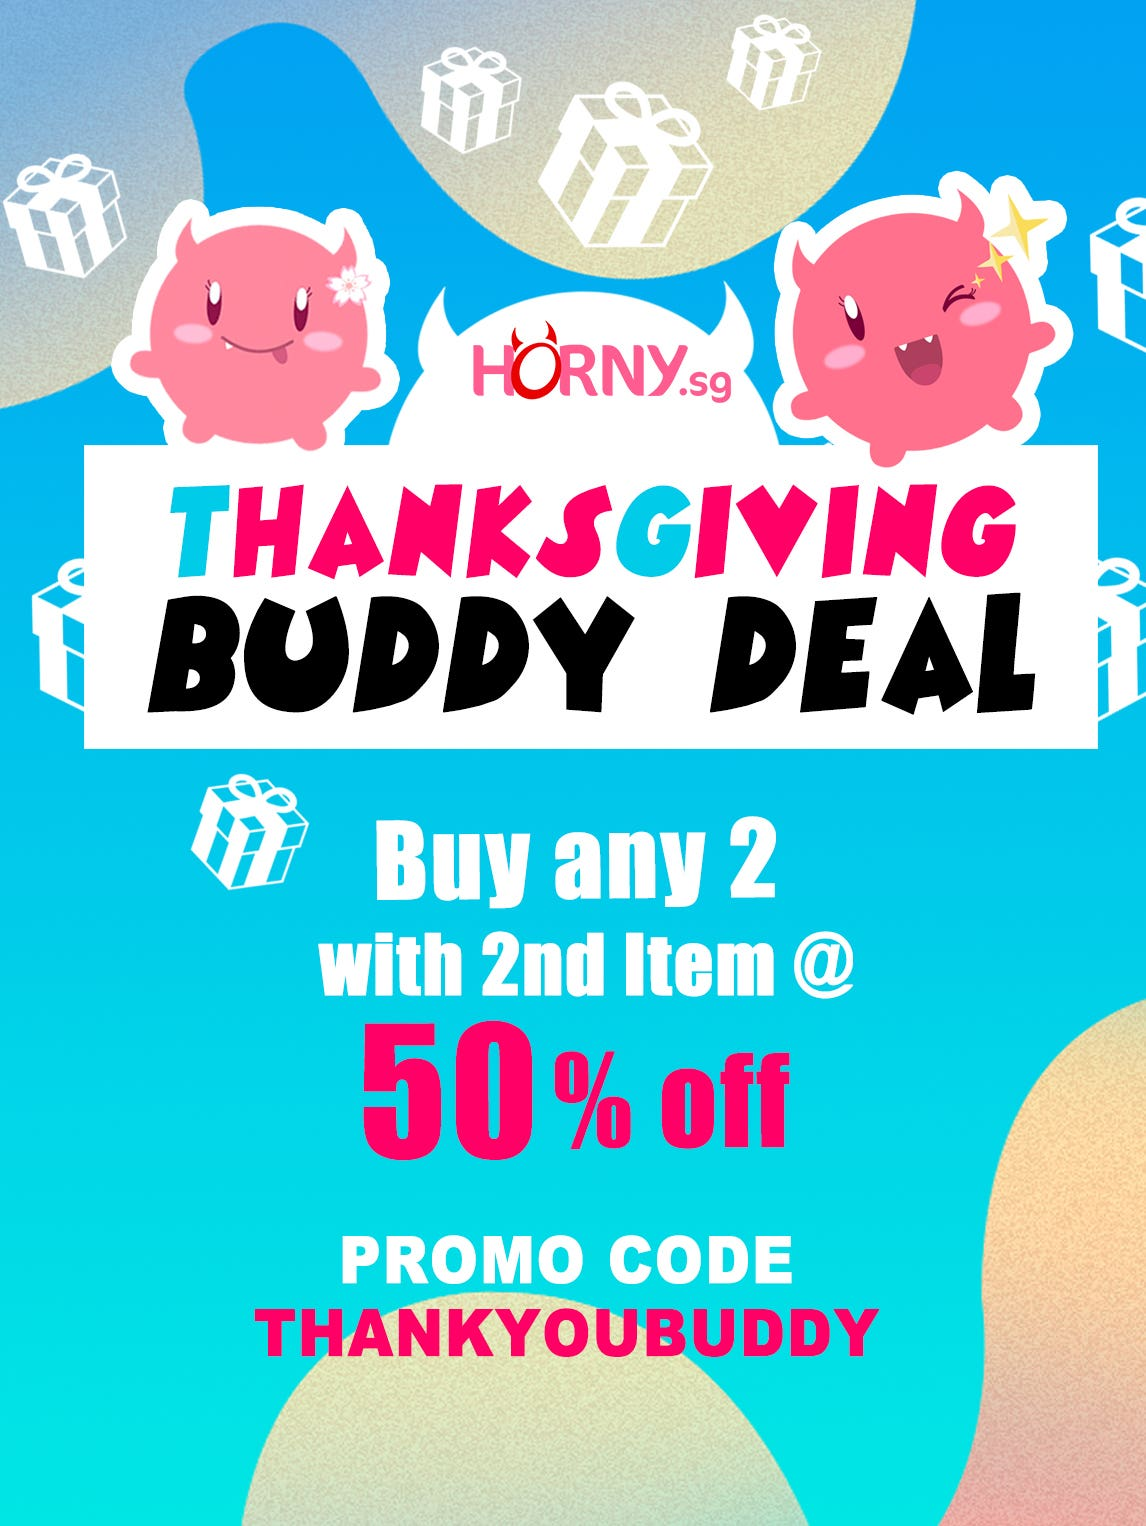 Buddy Deal